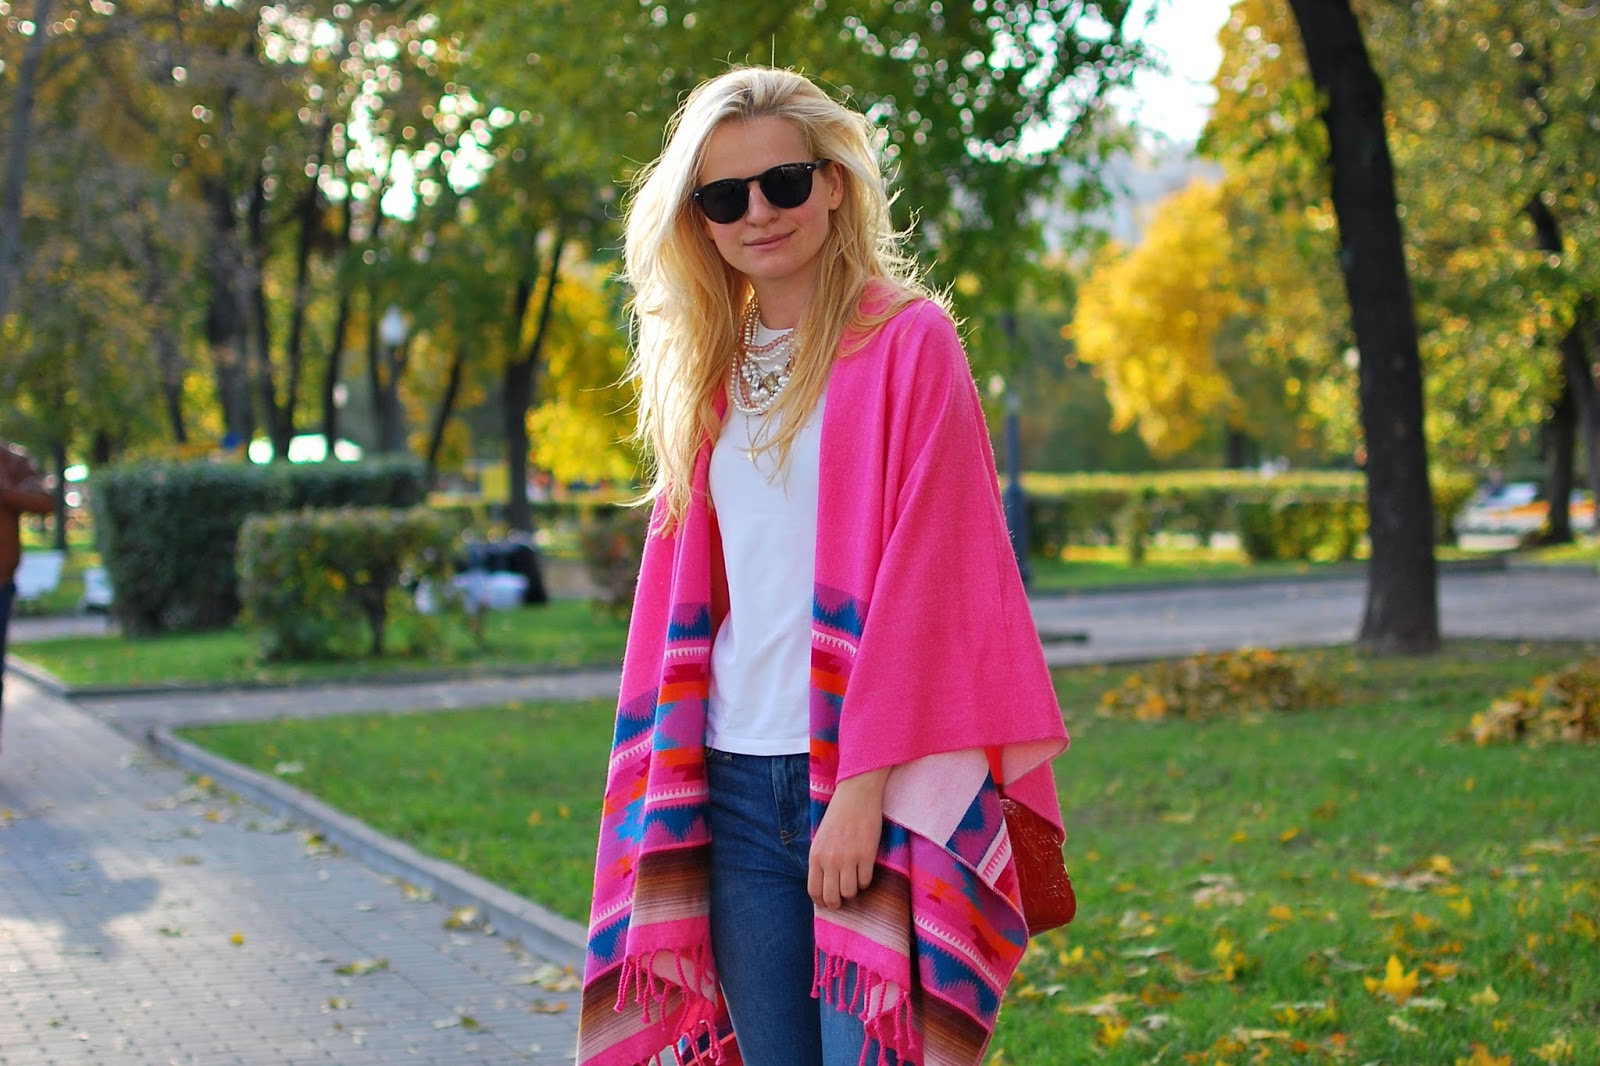 street style, fashion outfit autumn, осенние луки 2016